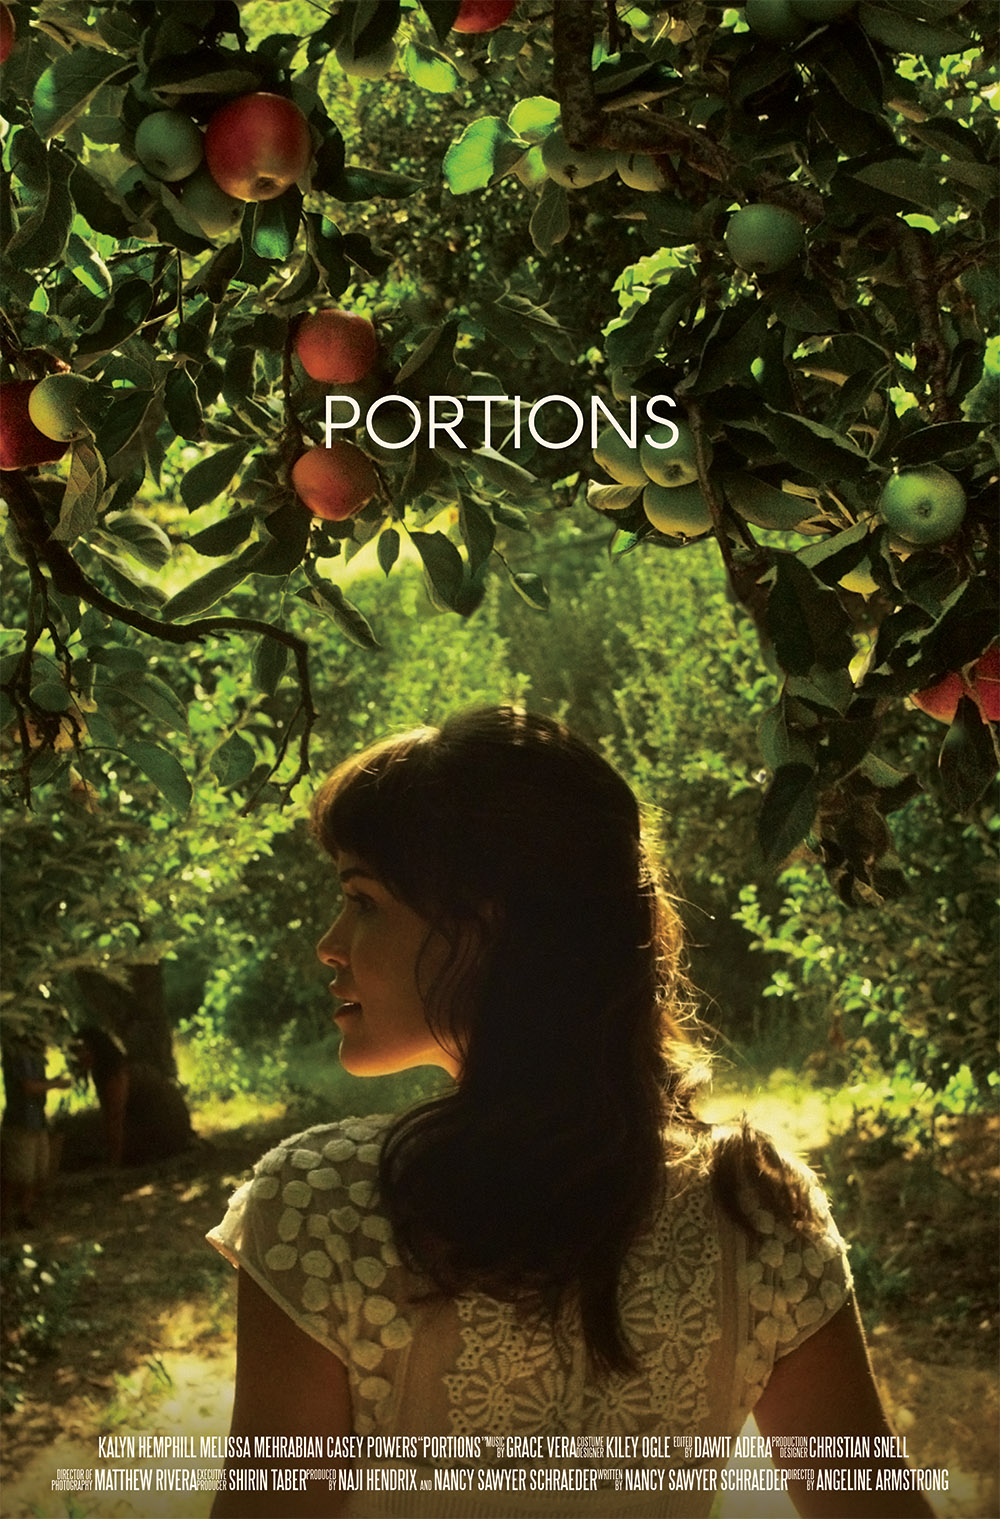 Portions Poster Full Size Final RGB.jpg